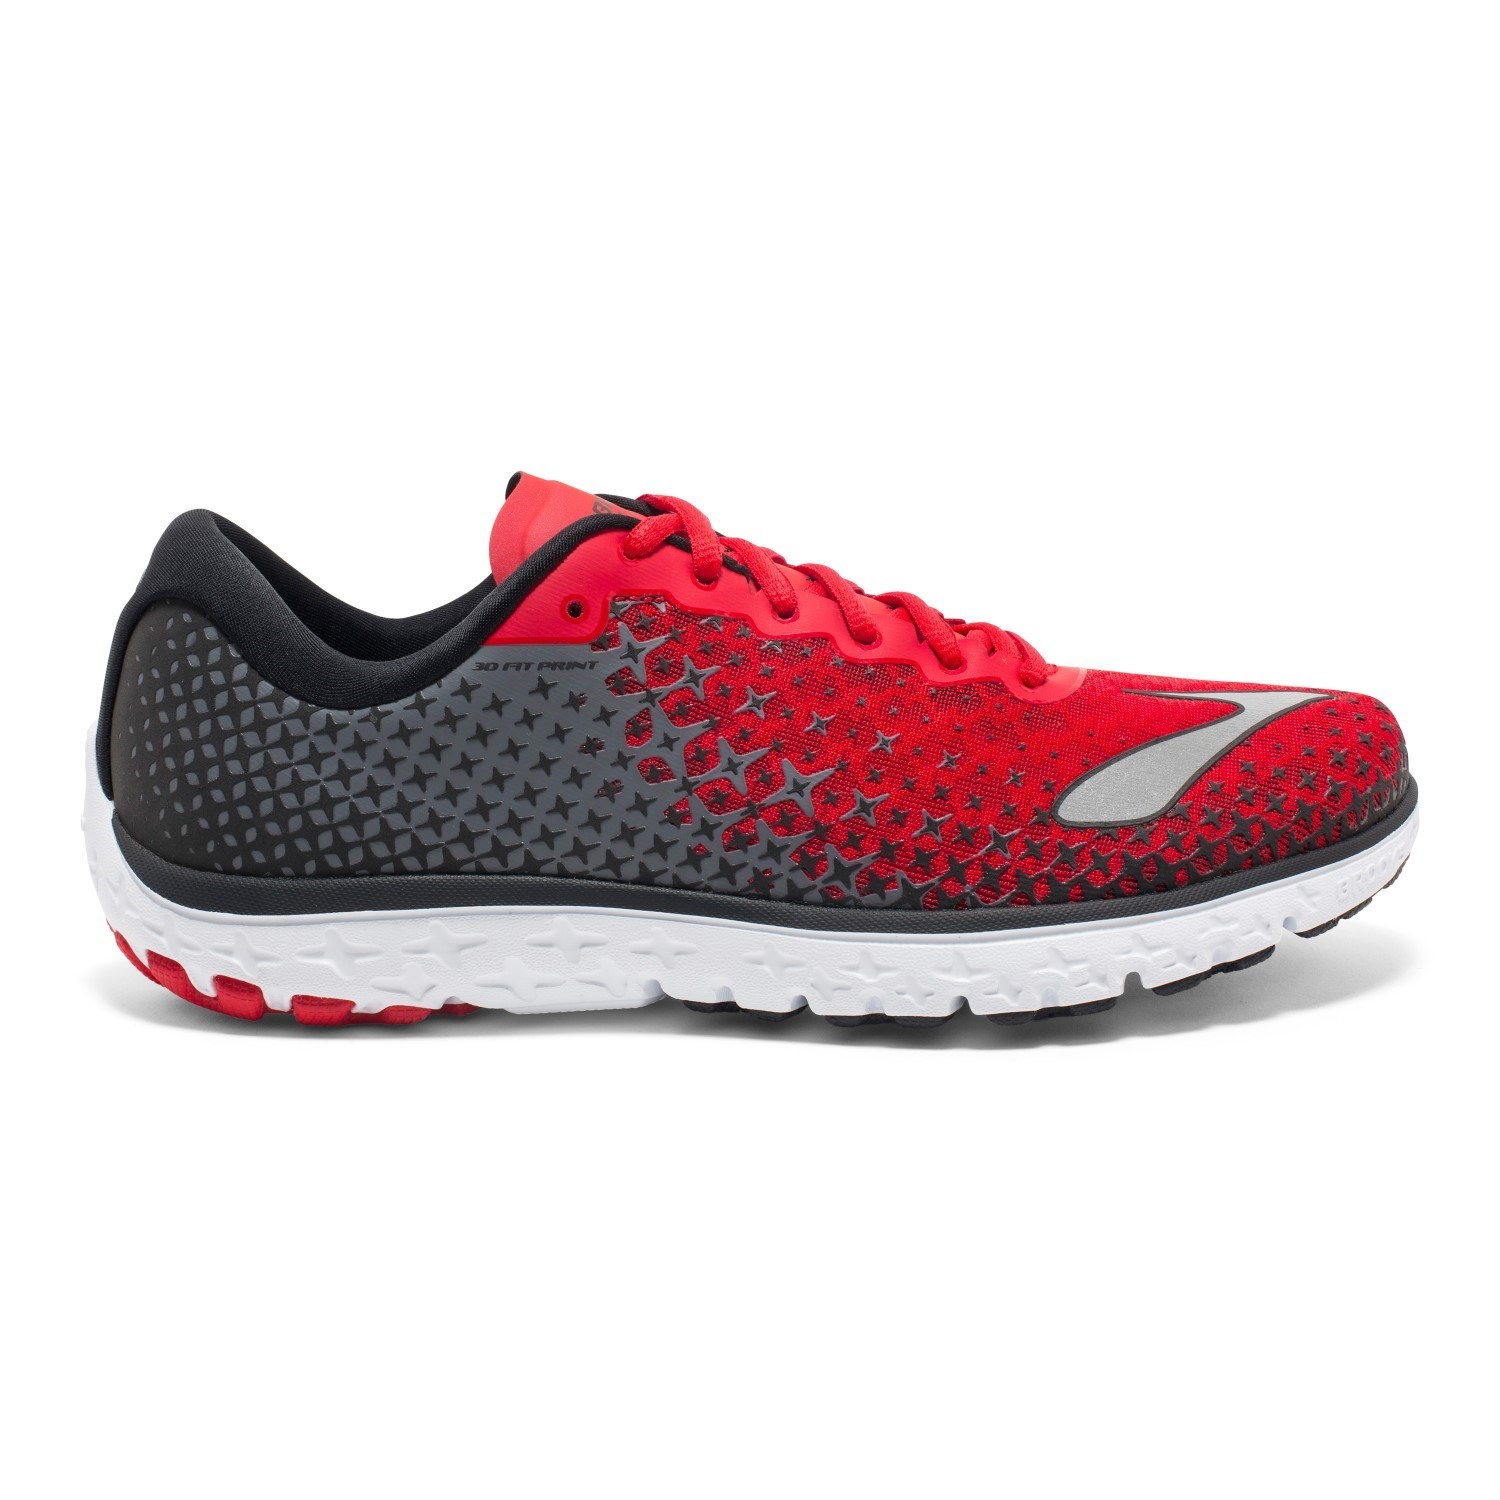 154603276dc71 Brooks PureFlow 5 - Mens Running Shoes - High Risk Red Black Silver ...